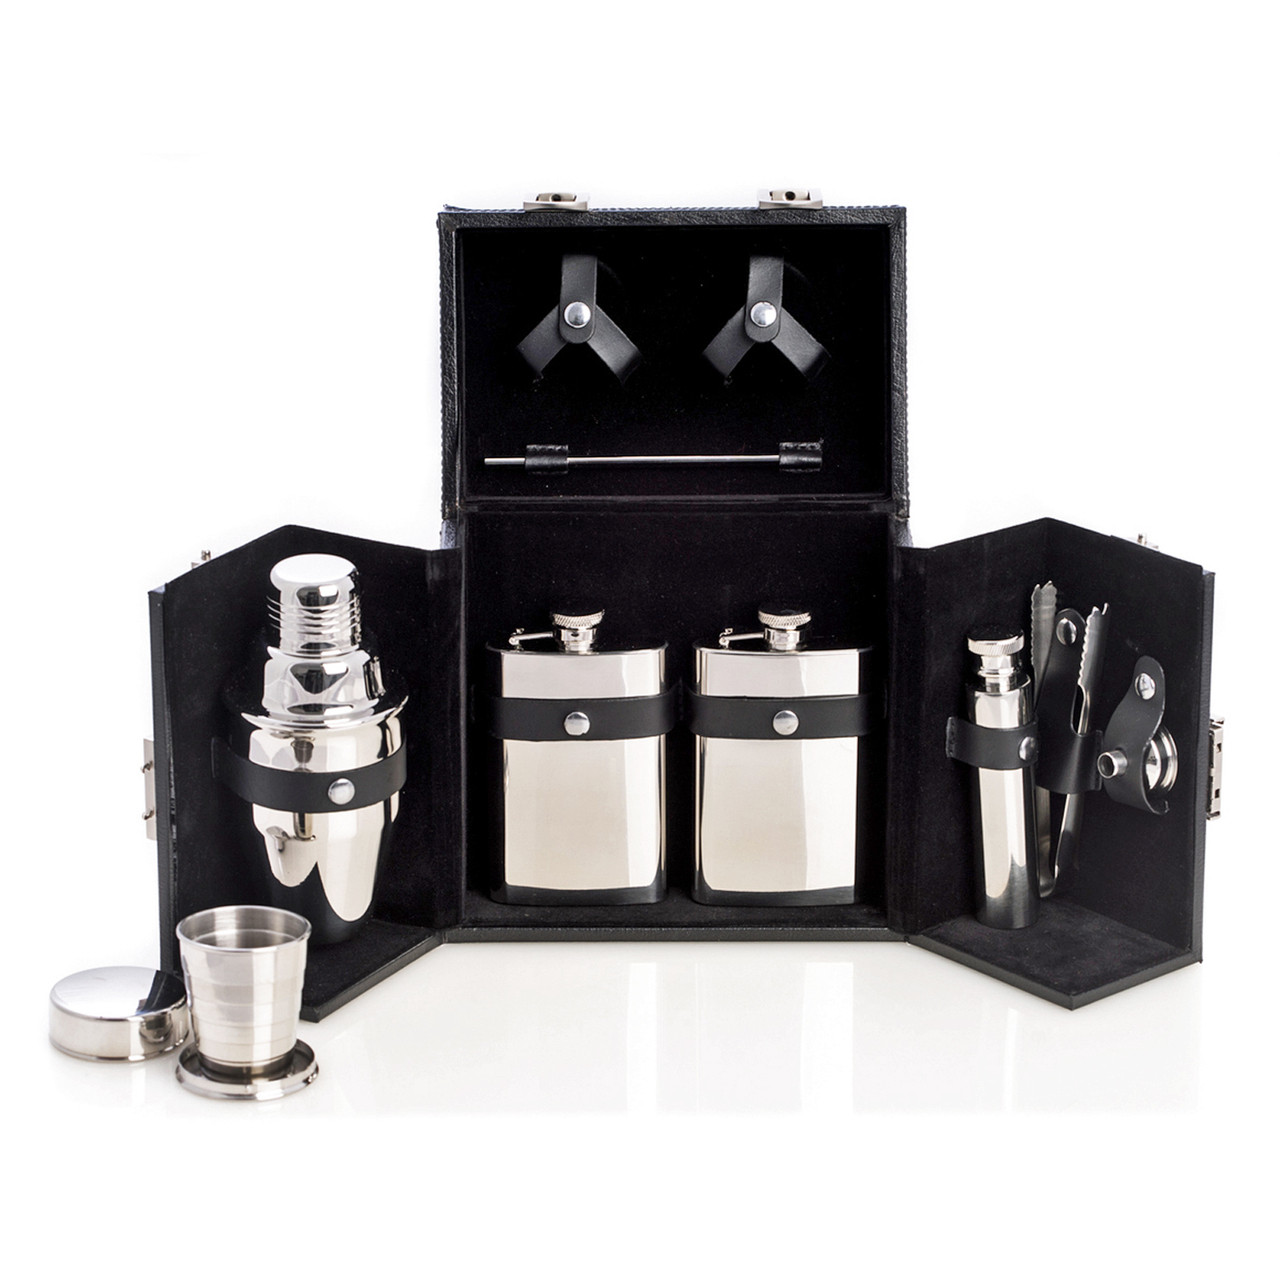 Stainless Steel Travel Bar Set Kensington Row Sets Collapsible Cup Image 1